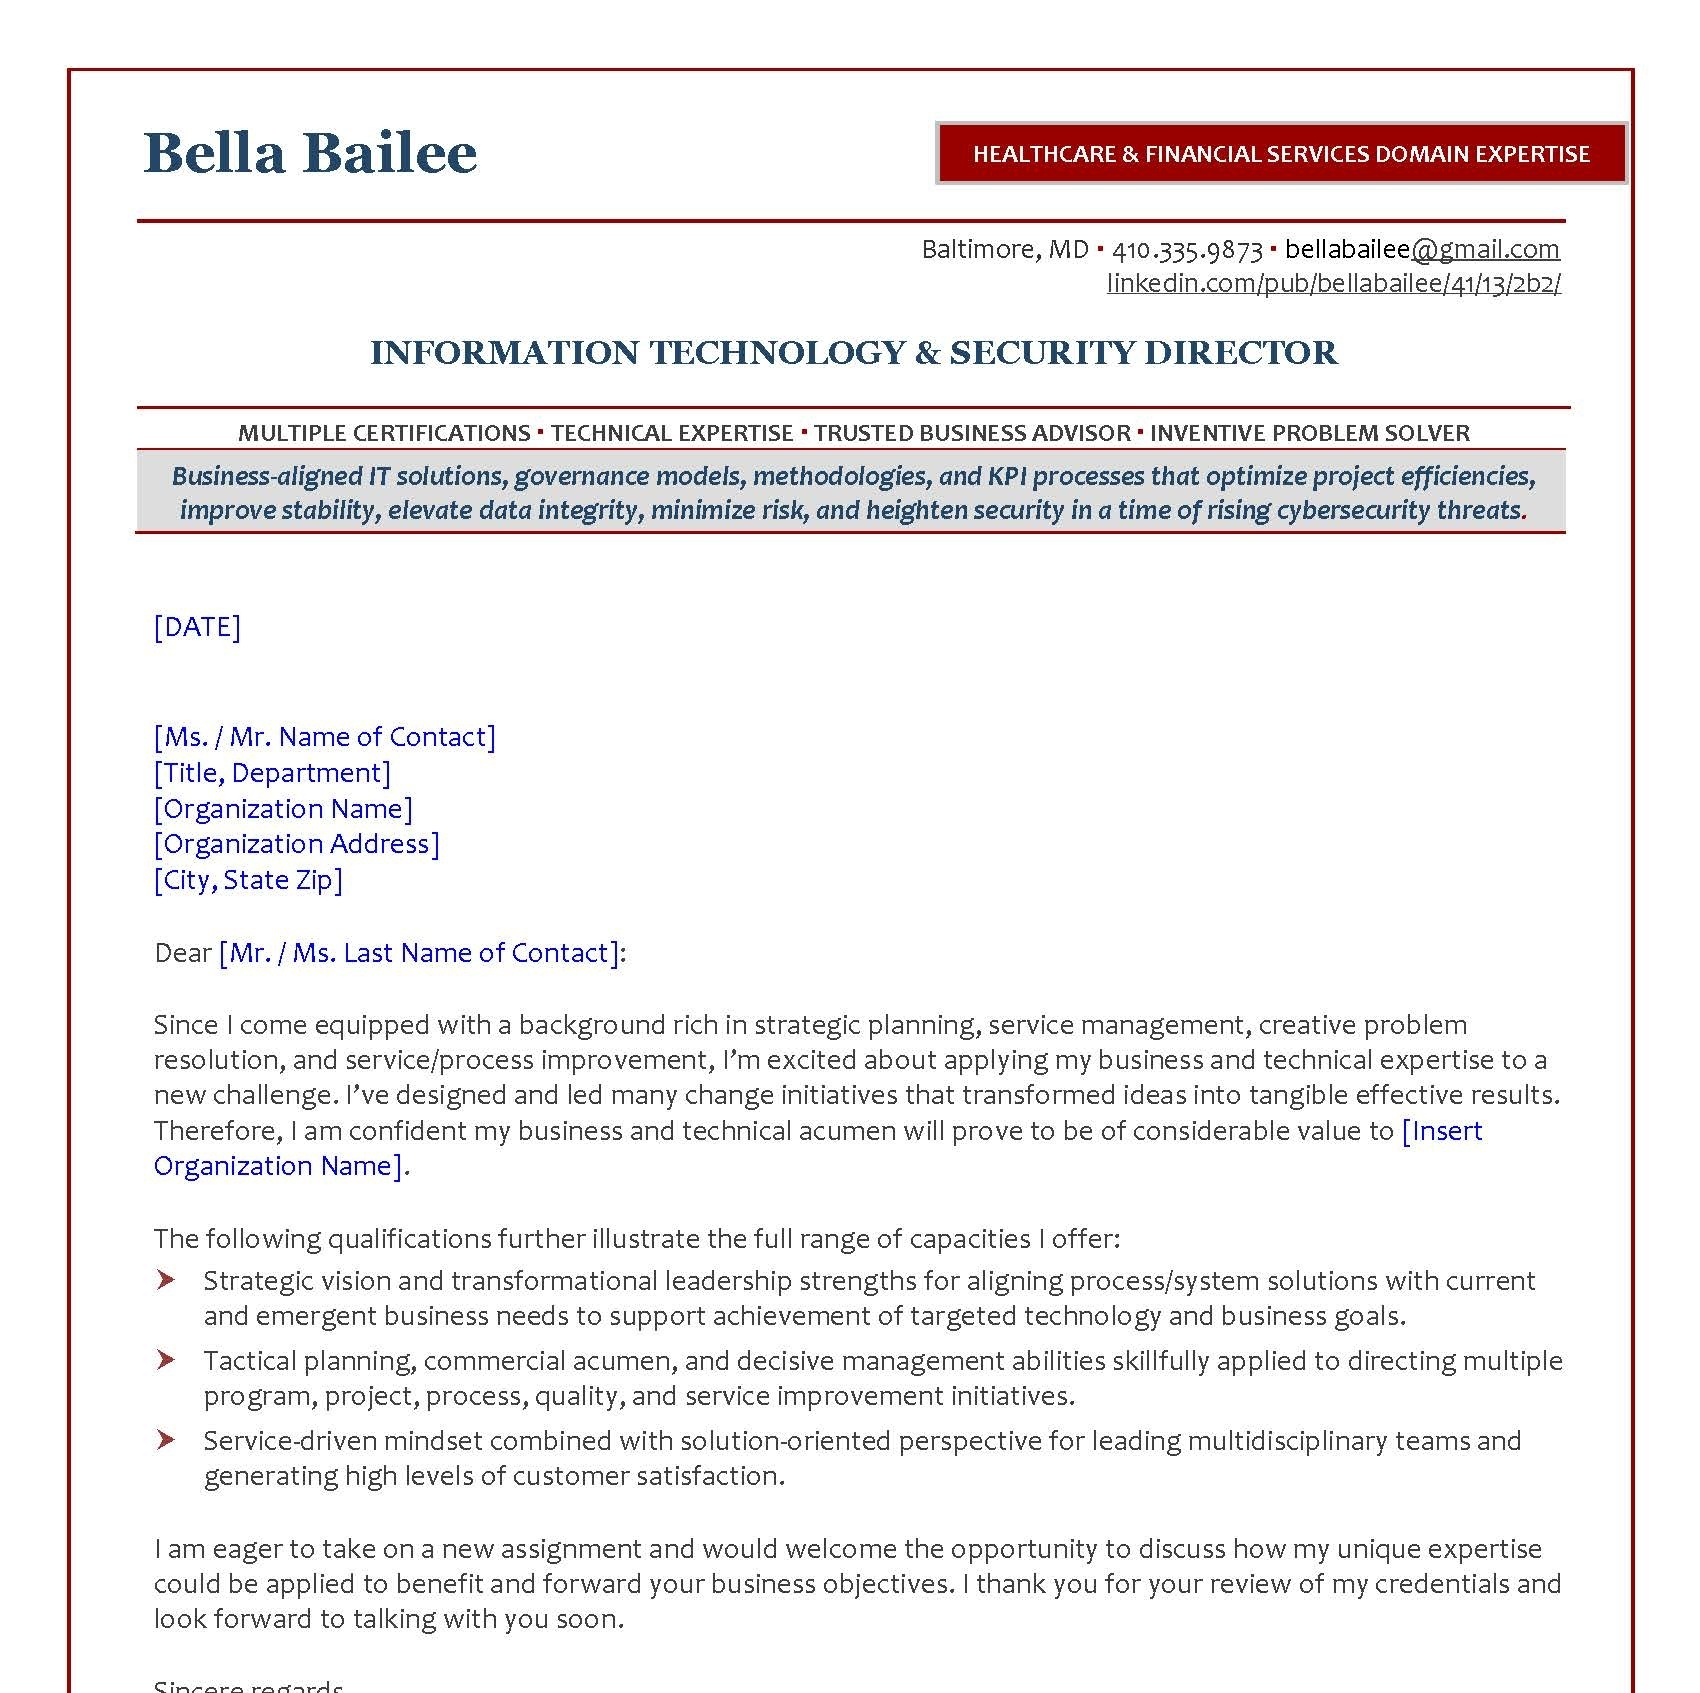 Linkedin Cover Letter   Fees Bonnie Career Services Inc Certified Resume